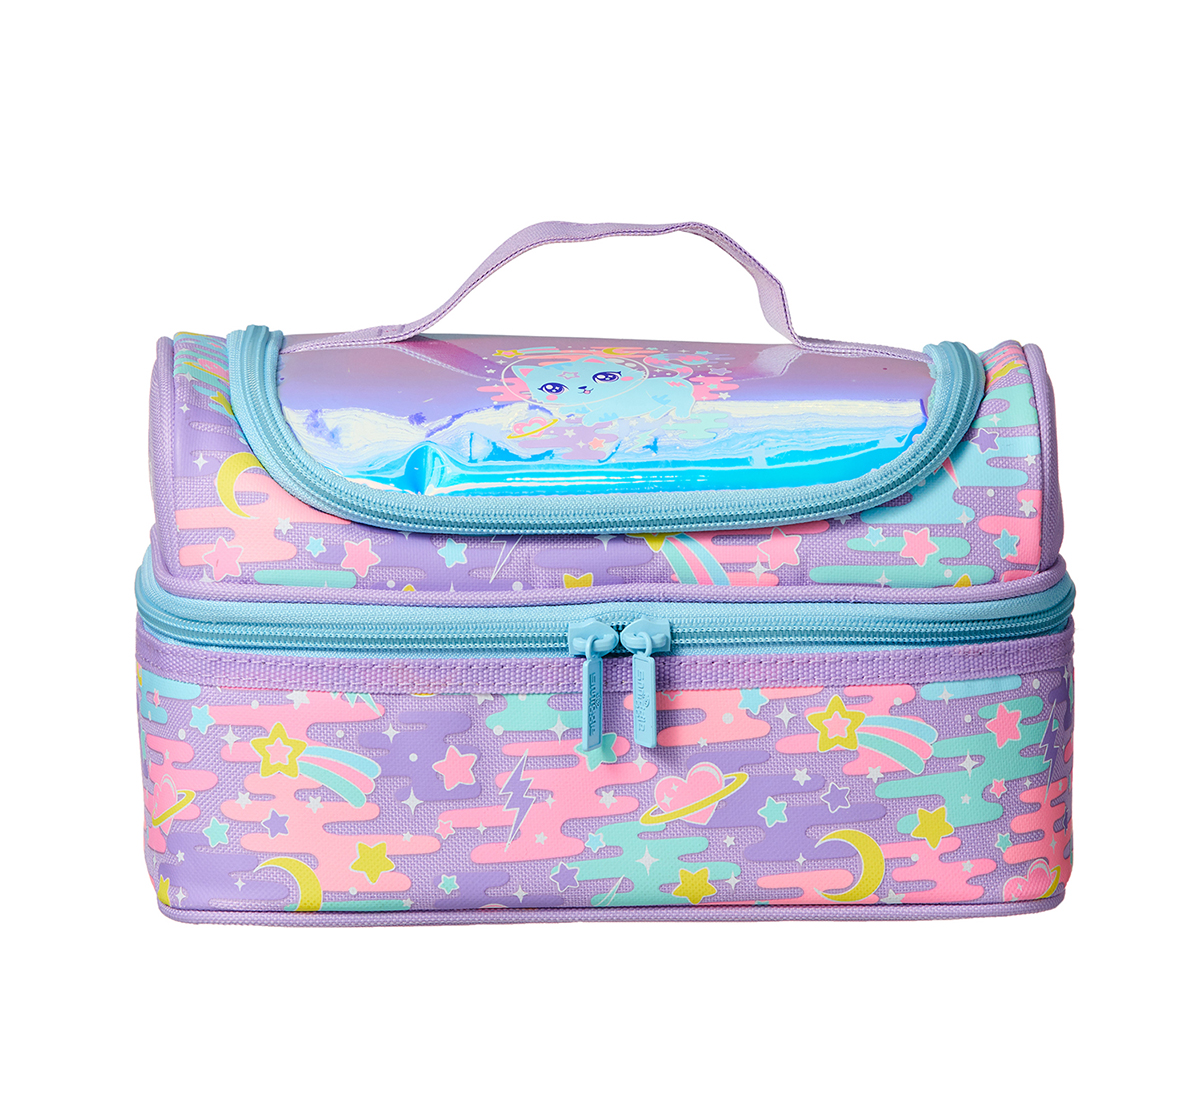 Smiggle |  Smiggle Far Away Double Decker Lunchbox - Cat Print Bags for Kids age 3Y+ (Lilac)